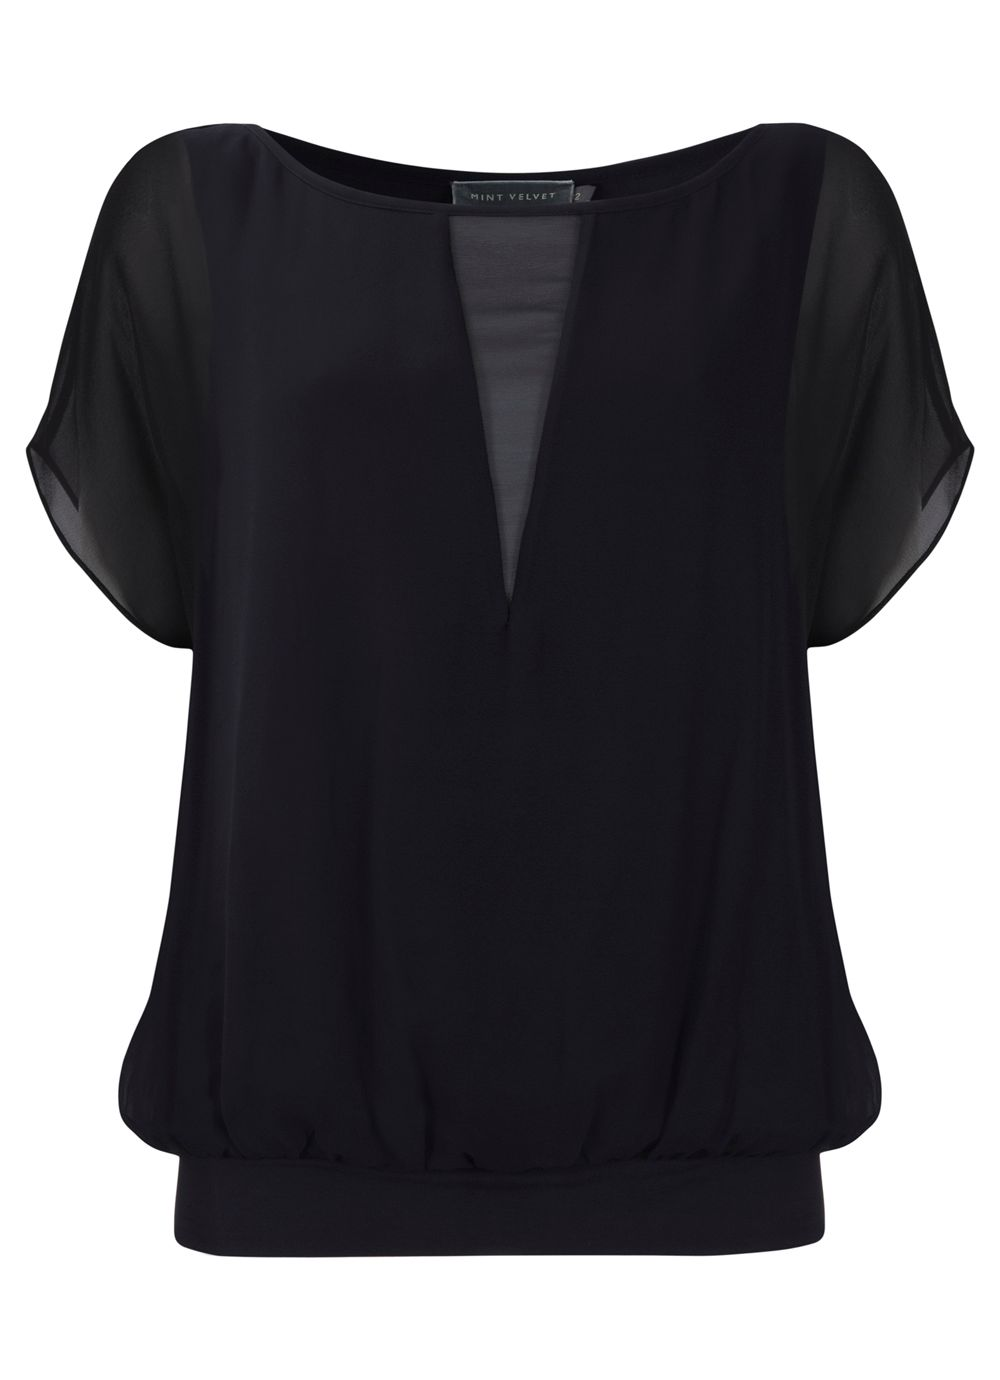 Navy sheer v blouson top